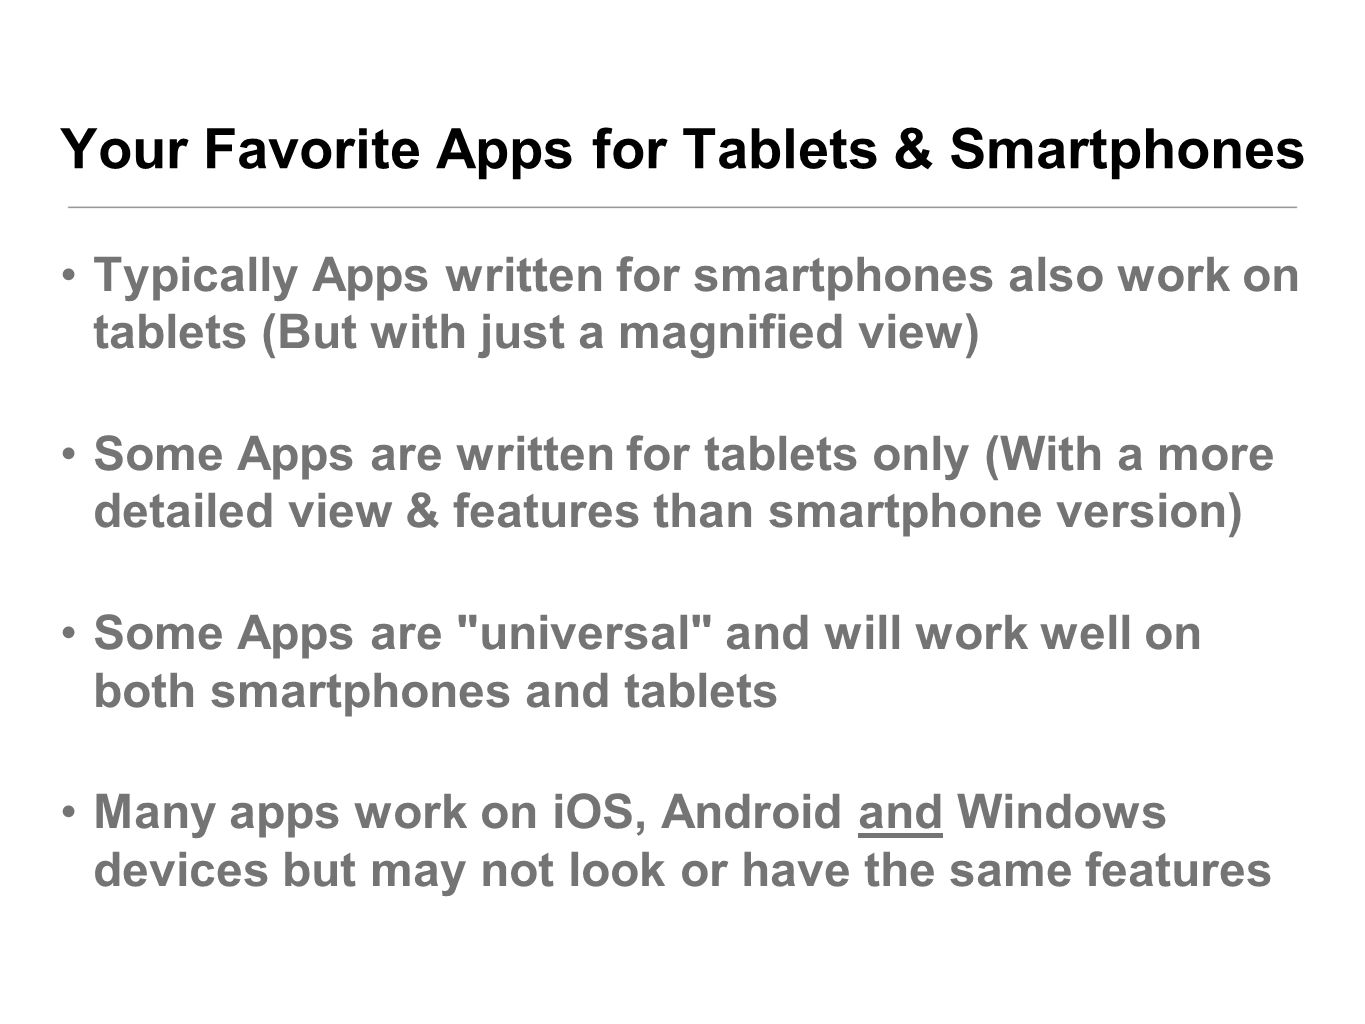 Your Favorite Apps for Tablets & Smartphones Typically Apps written for smartphones also work on tablets (But with just a magnified view) Some Apps are written for tablets only (With a more detailed view & features than smartphone version) Some Apps are universal and will work well on both smartphones and tablets Many apps work on iOS, Android and Windows devices but may not look or have the same features